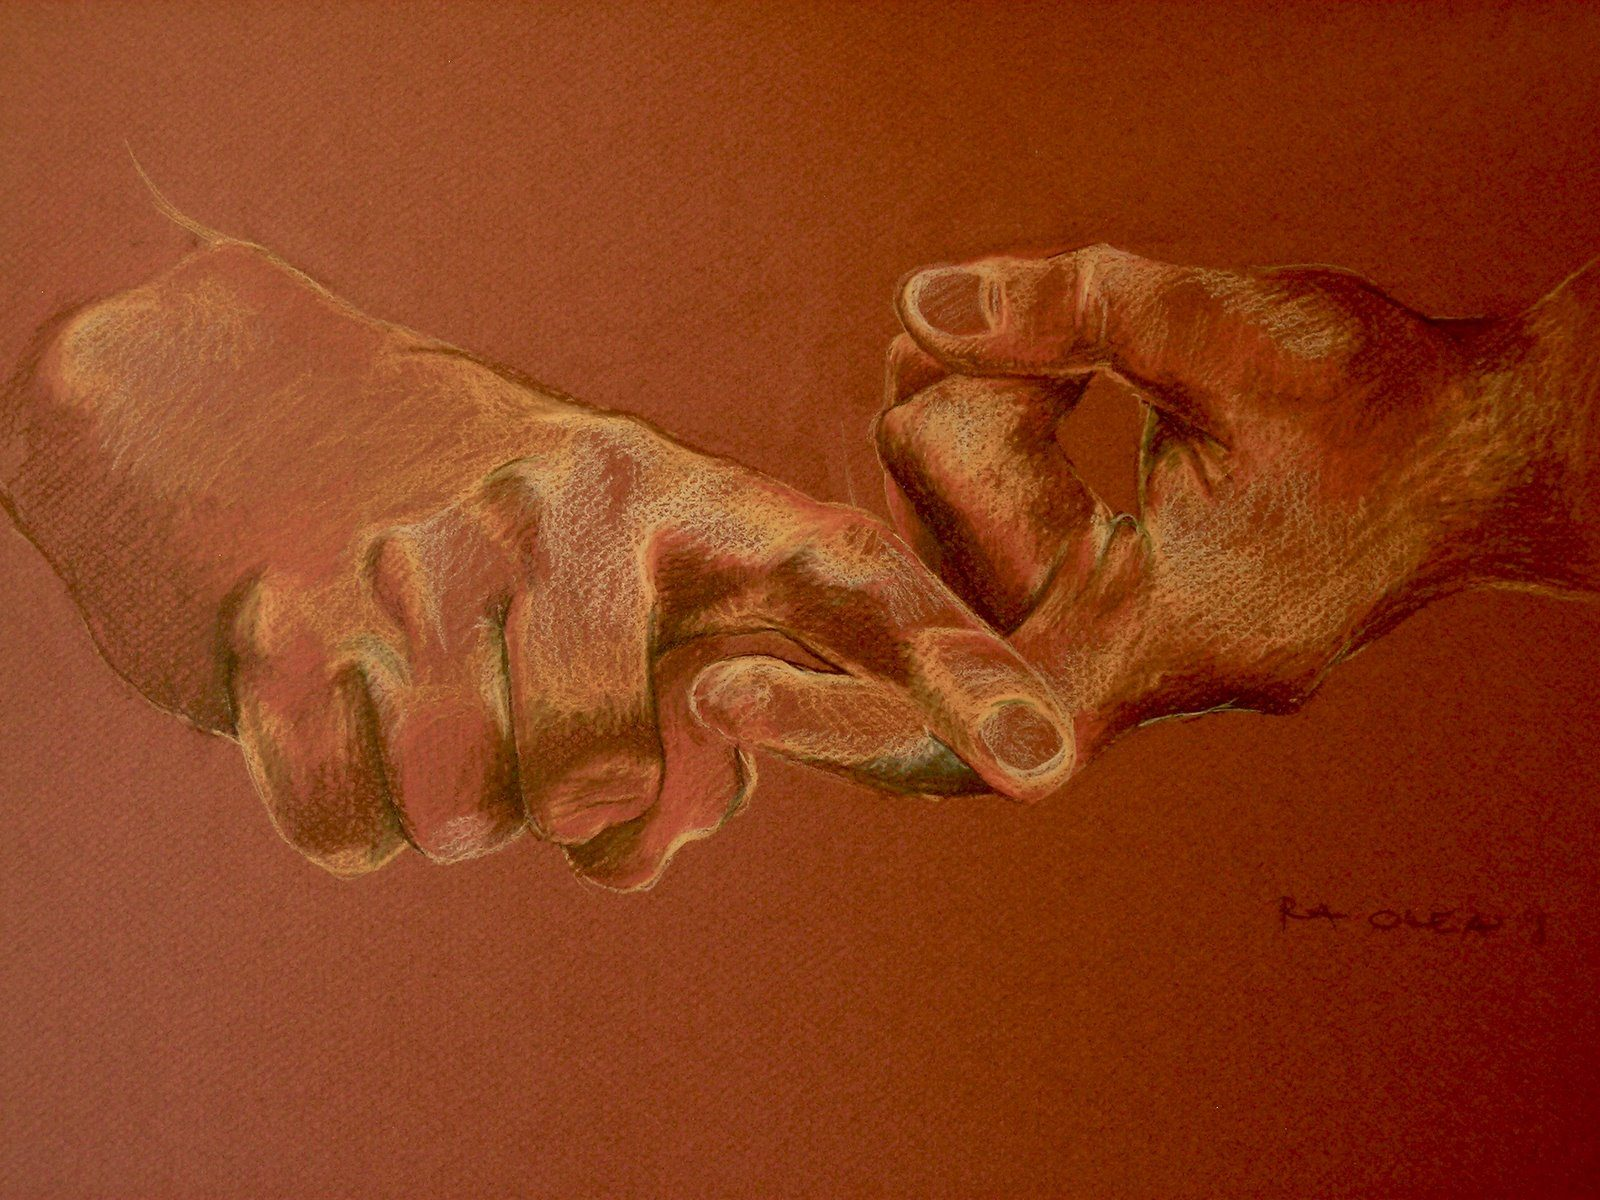 illustration of two hands making ASL gesture for Friend